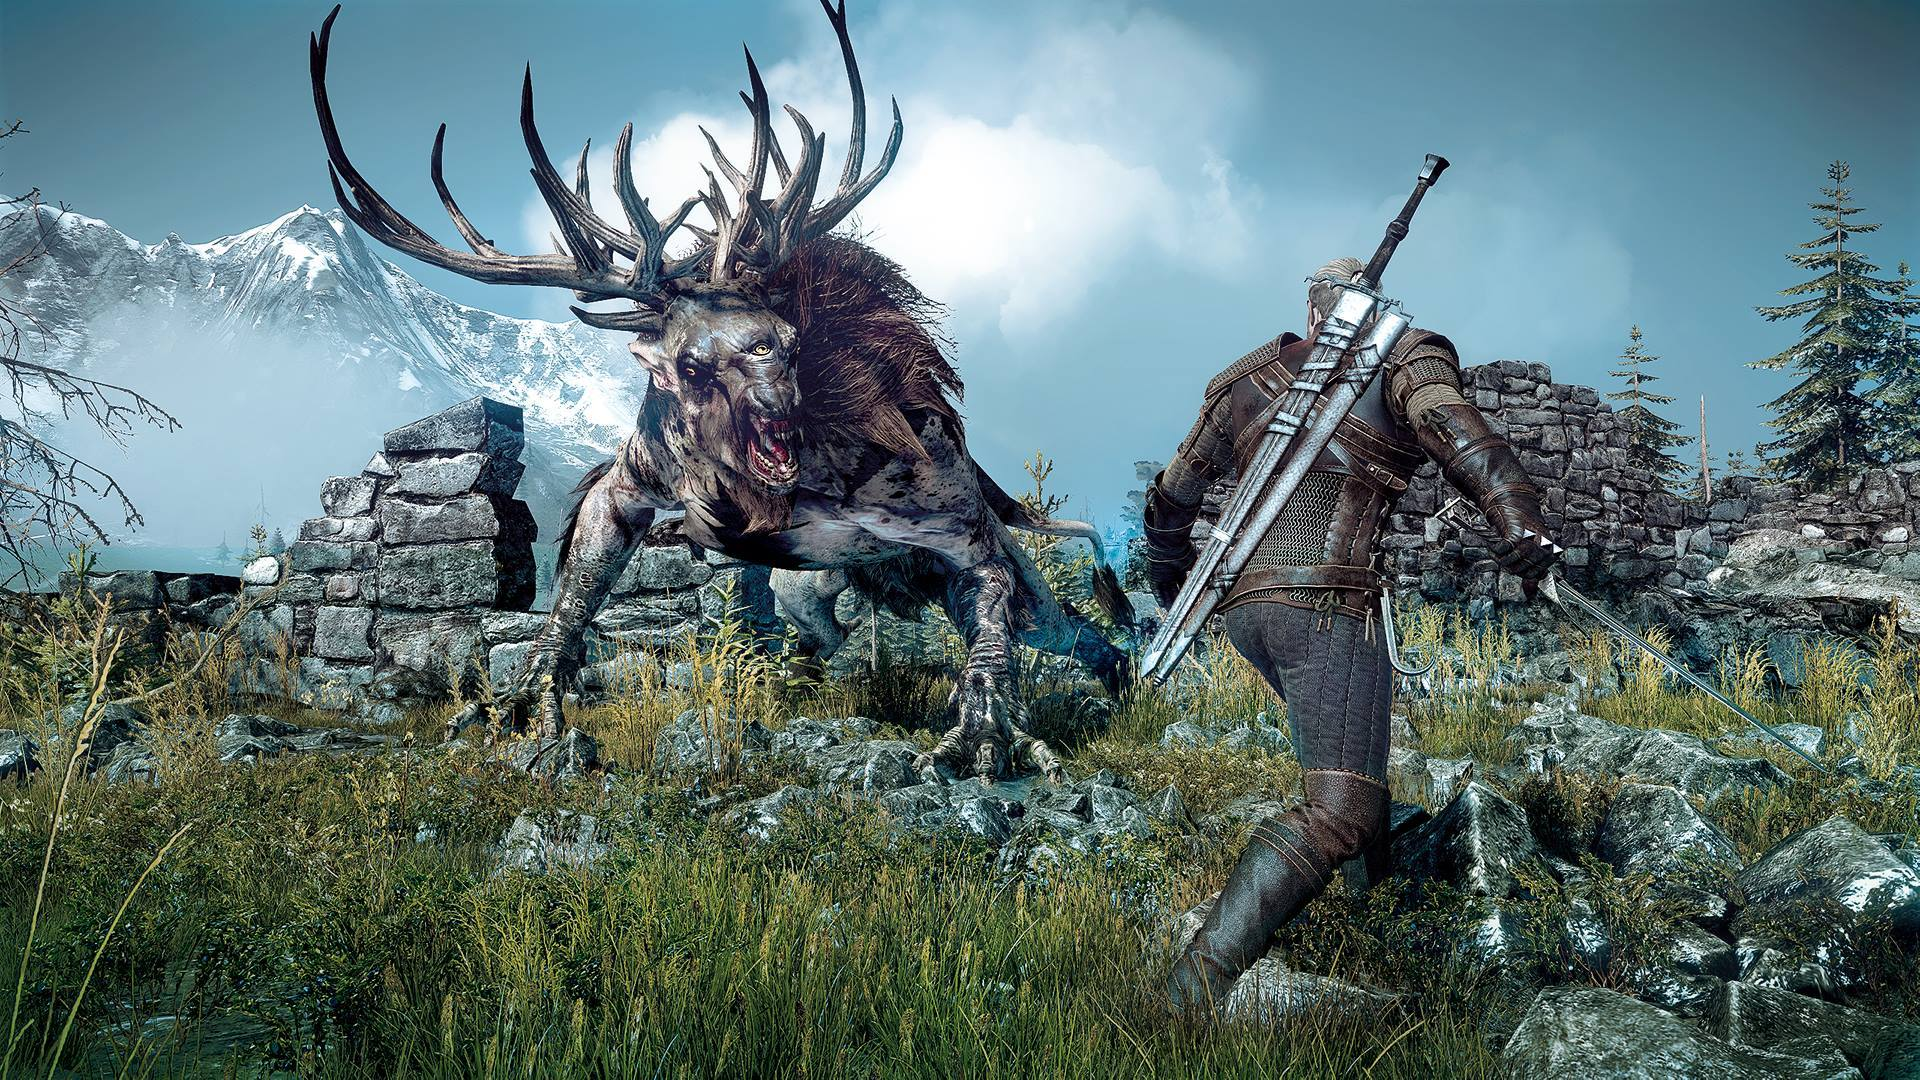 15 minutos de vídeo de 'The Witcher 3: Wild Hunt'